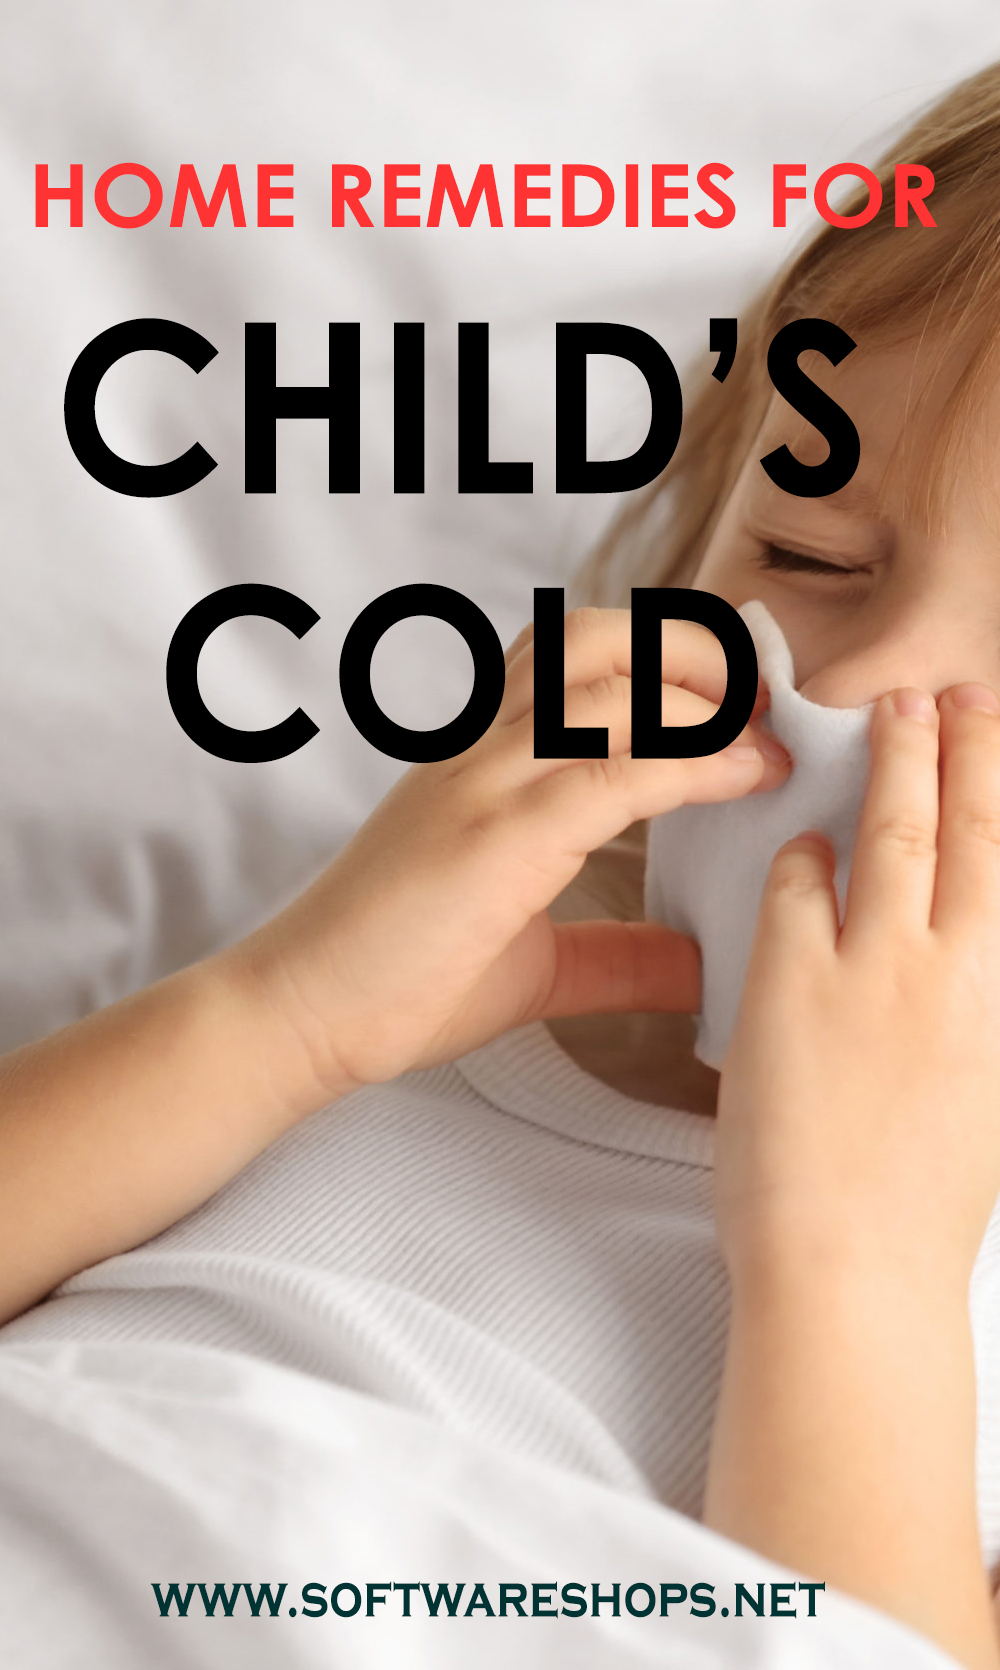 Home Made Remedies For Child's Cold